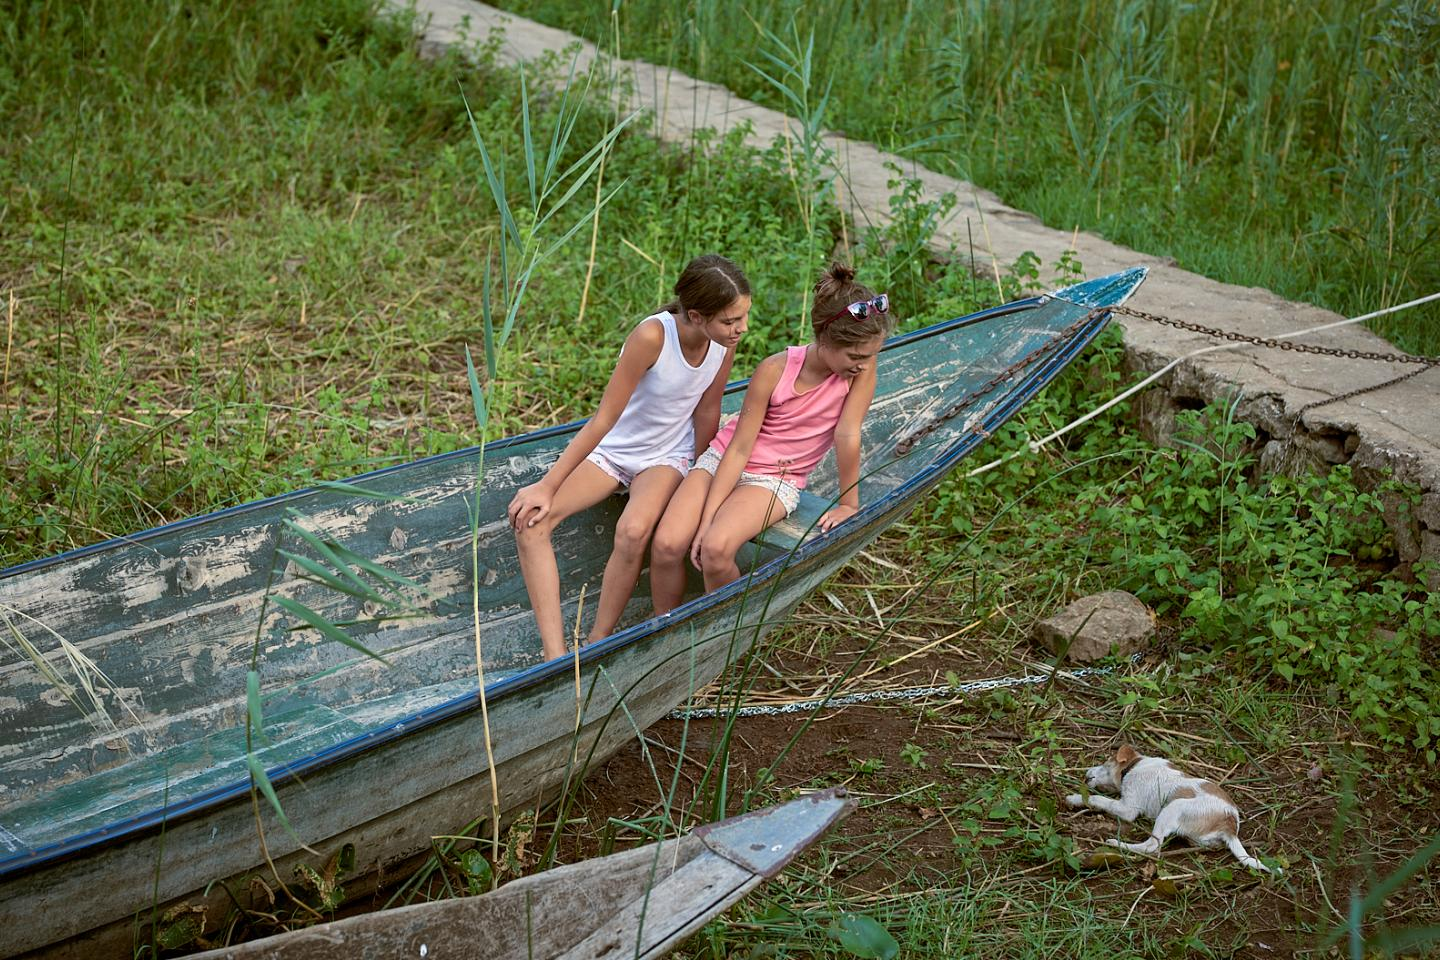 Two girls sitting in a boat on the ground watching a lying dog